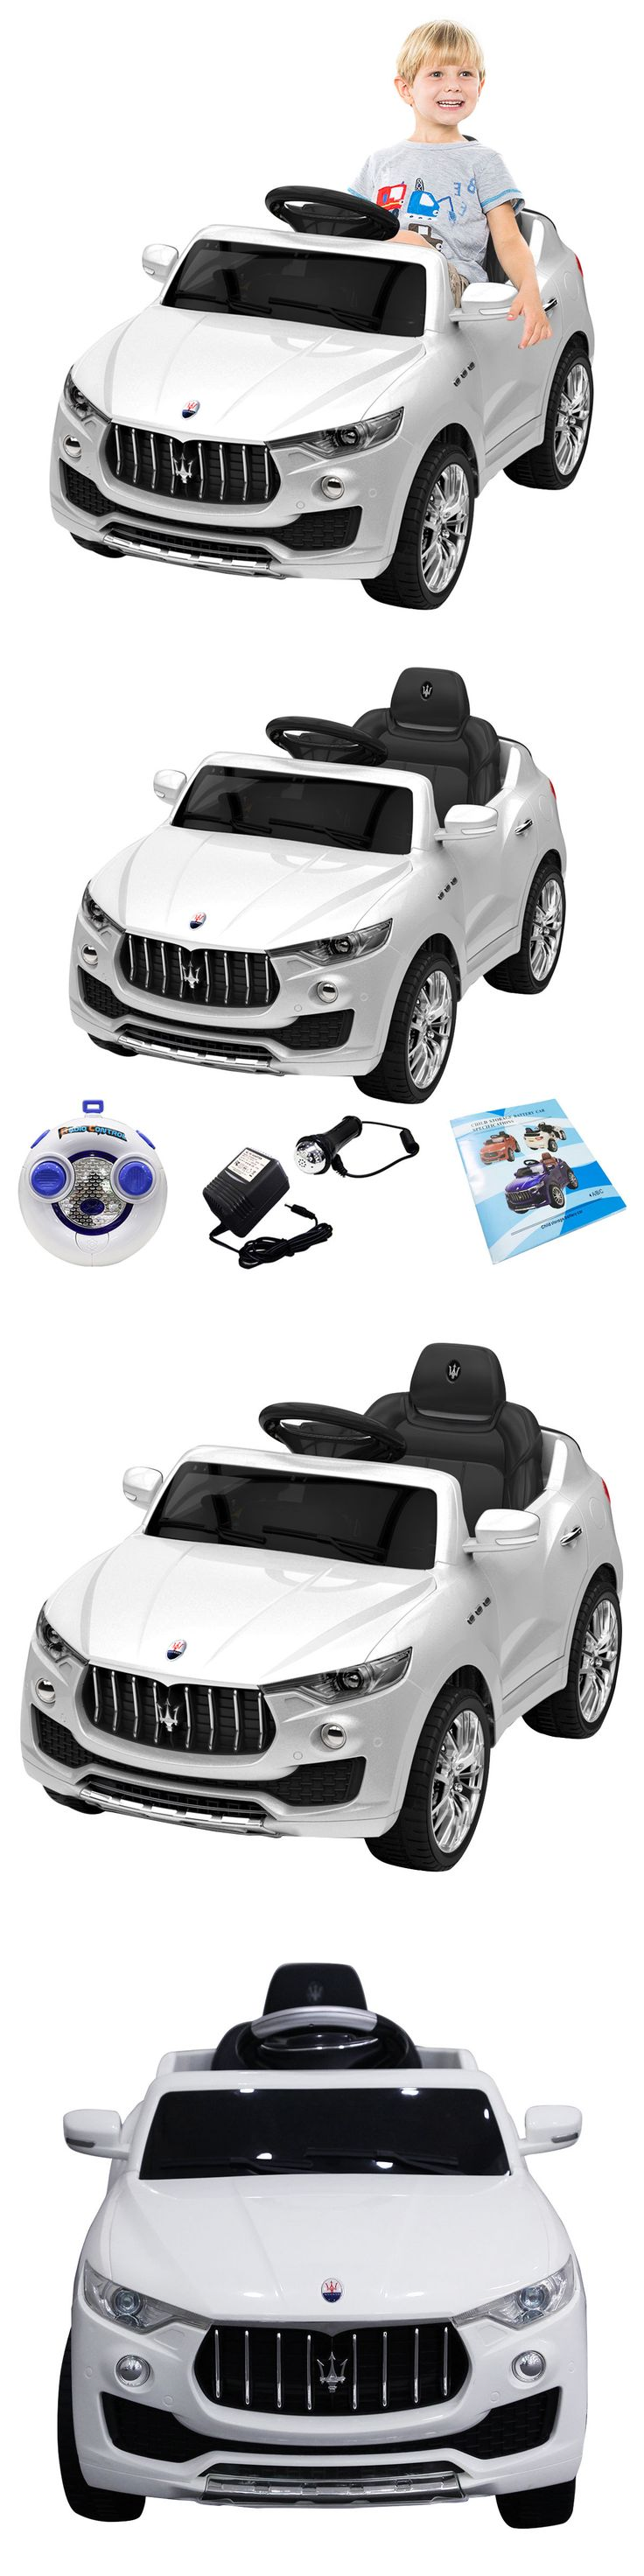 Ride On Toys and Accessories 145944: 6V Licensed Maserati Kids Ride On Car Rc Remote Control Opening Doors Mp3 Swing -> BUY IT NOW ONLY: $129.99 on eBay!